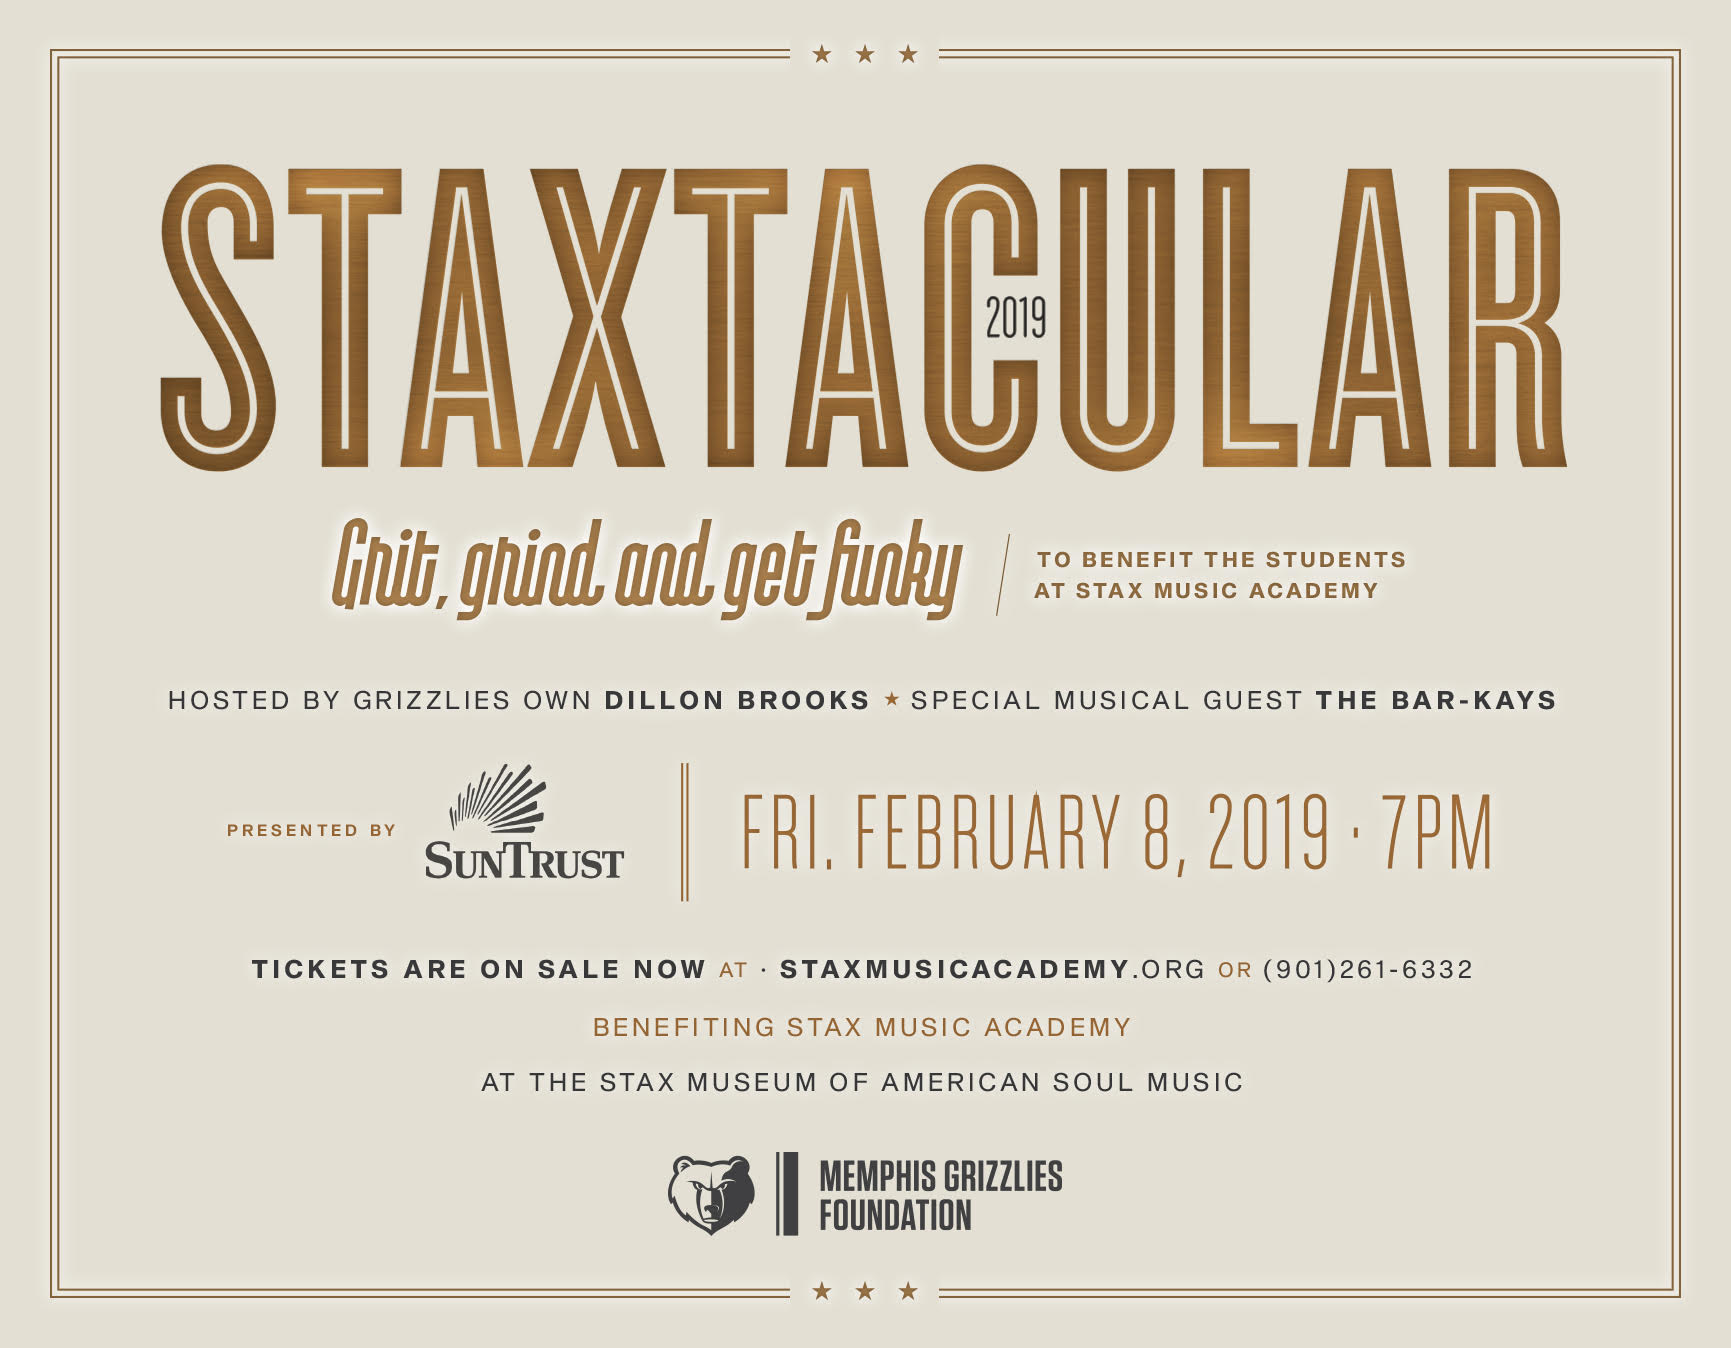 staxtacular 2019 tickets on sale now live music by stax music